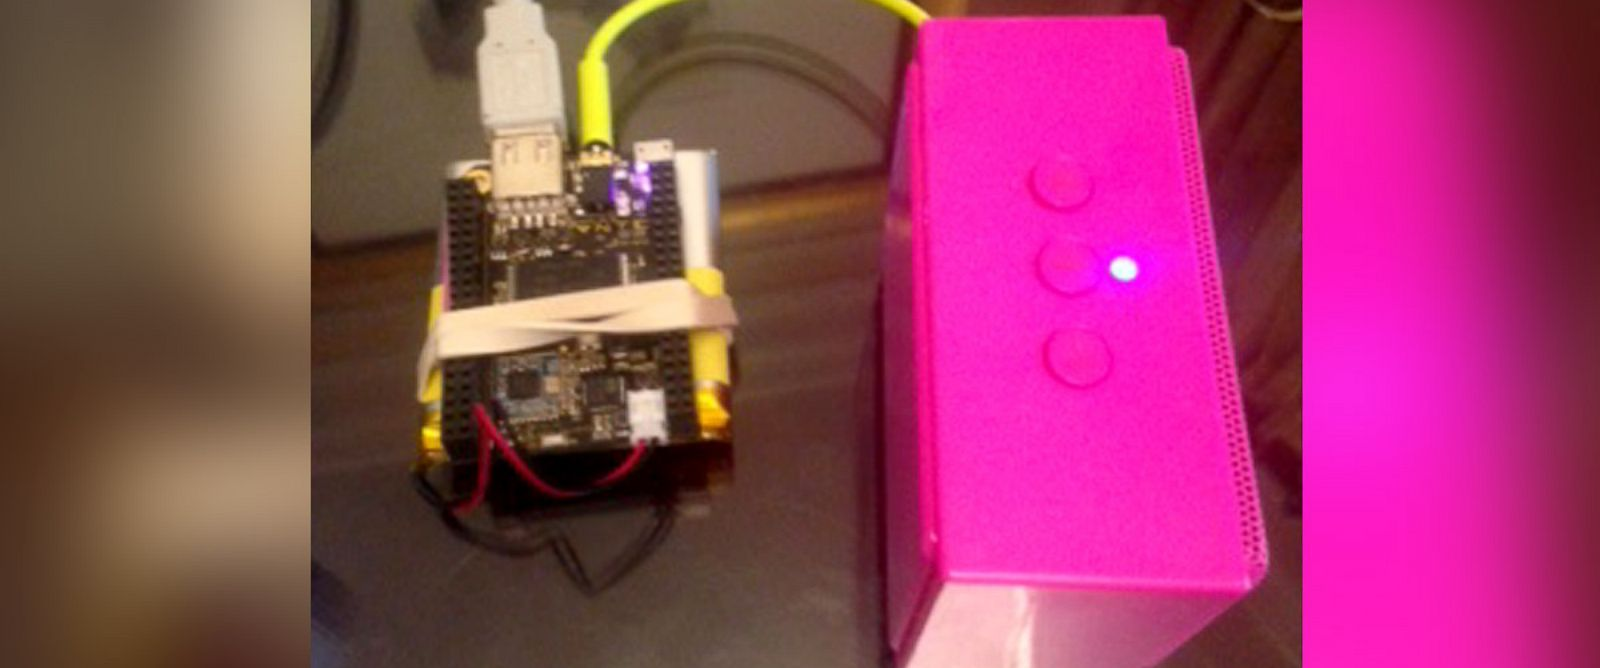 PHOTO: Chip is a $9 computer that can be used to build new projects.